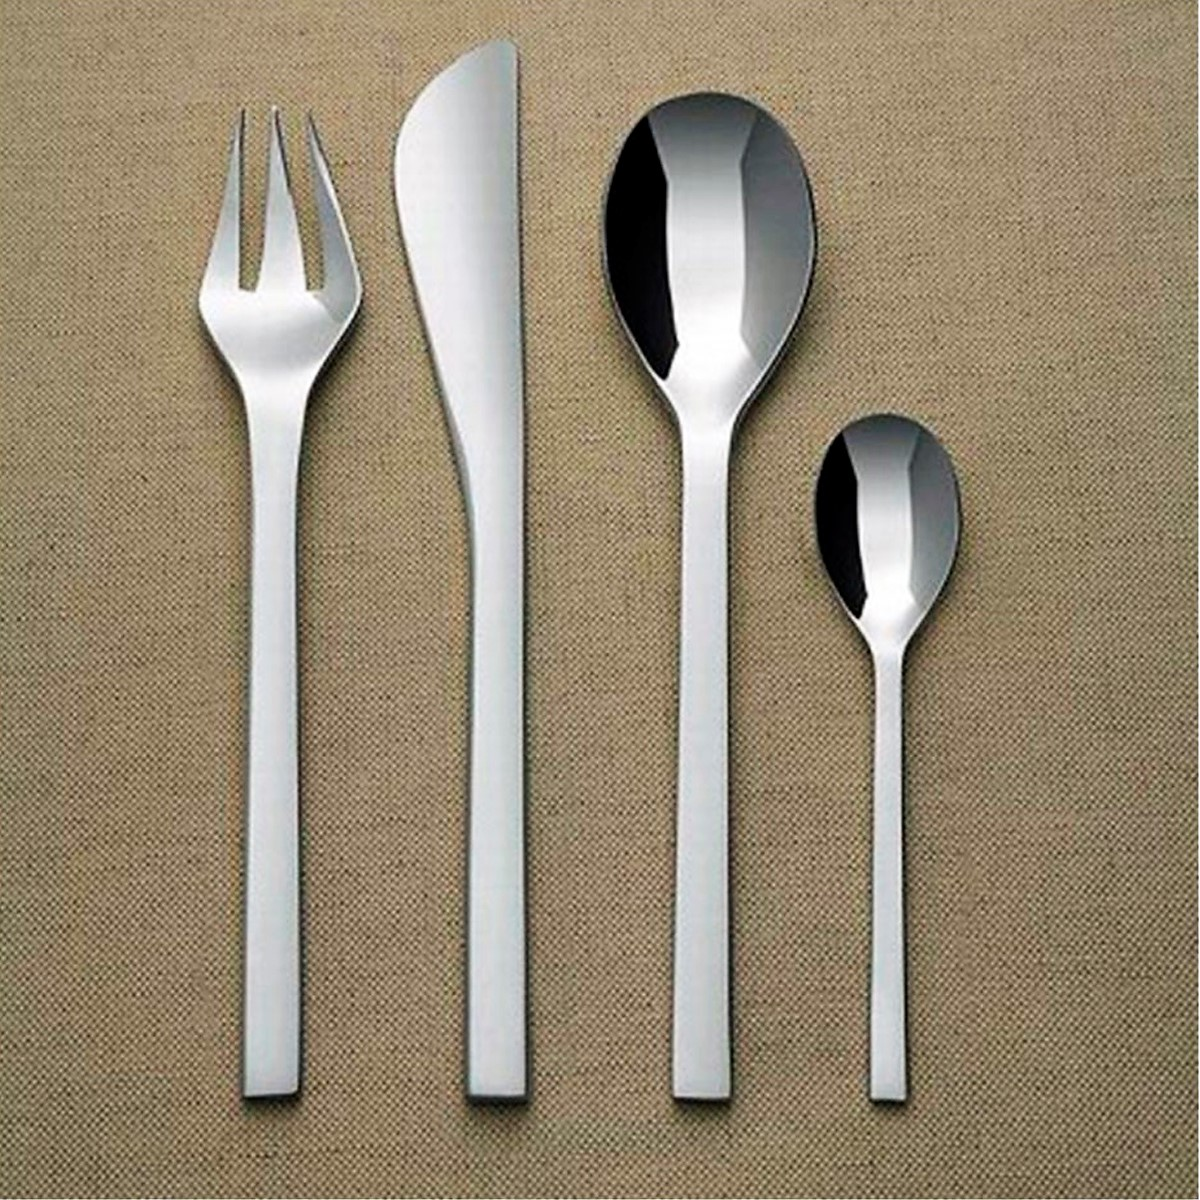 Alessi - Colombina Cutlery 2